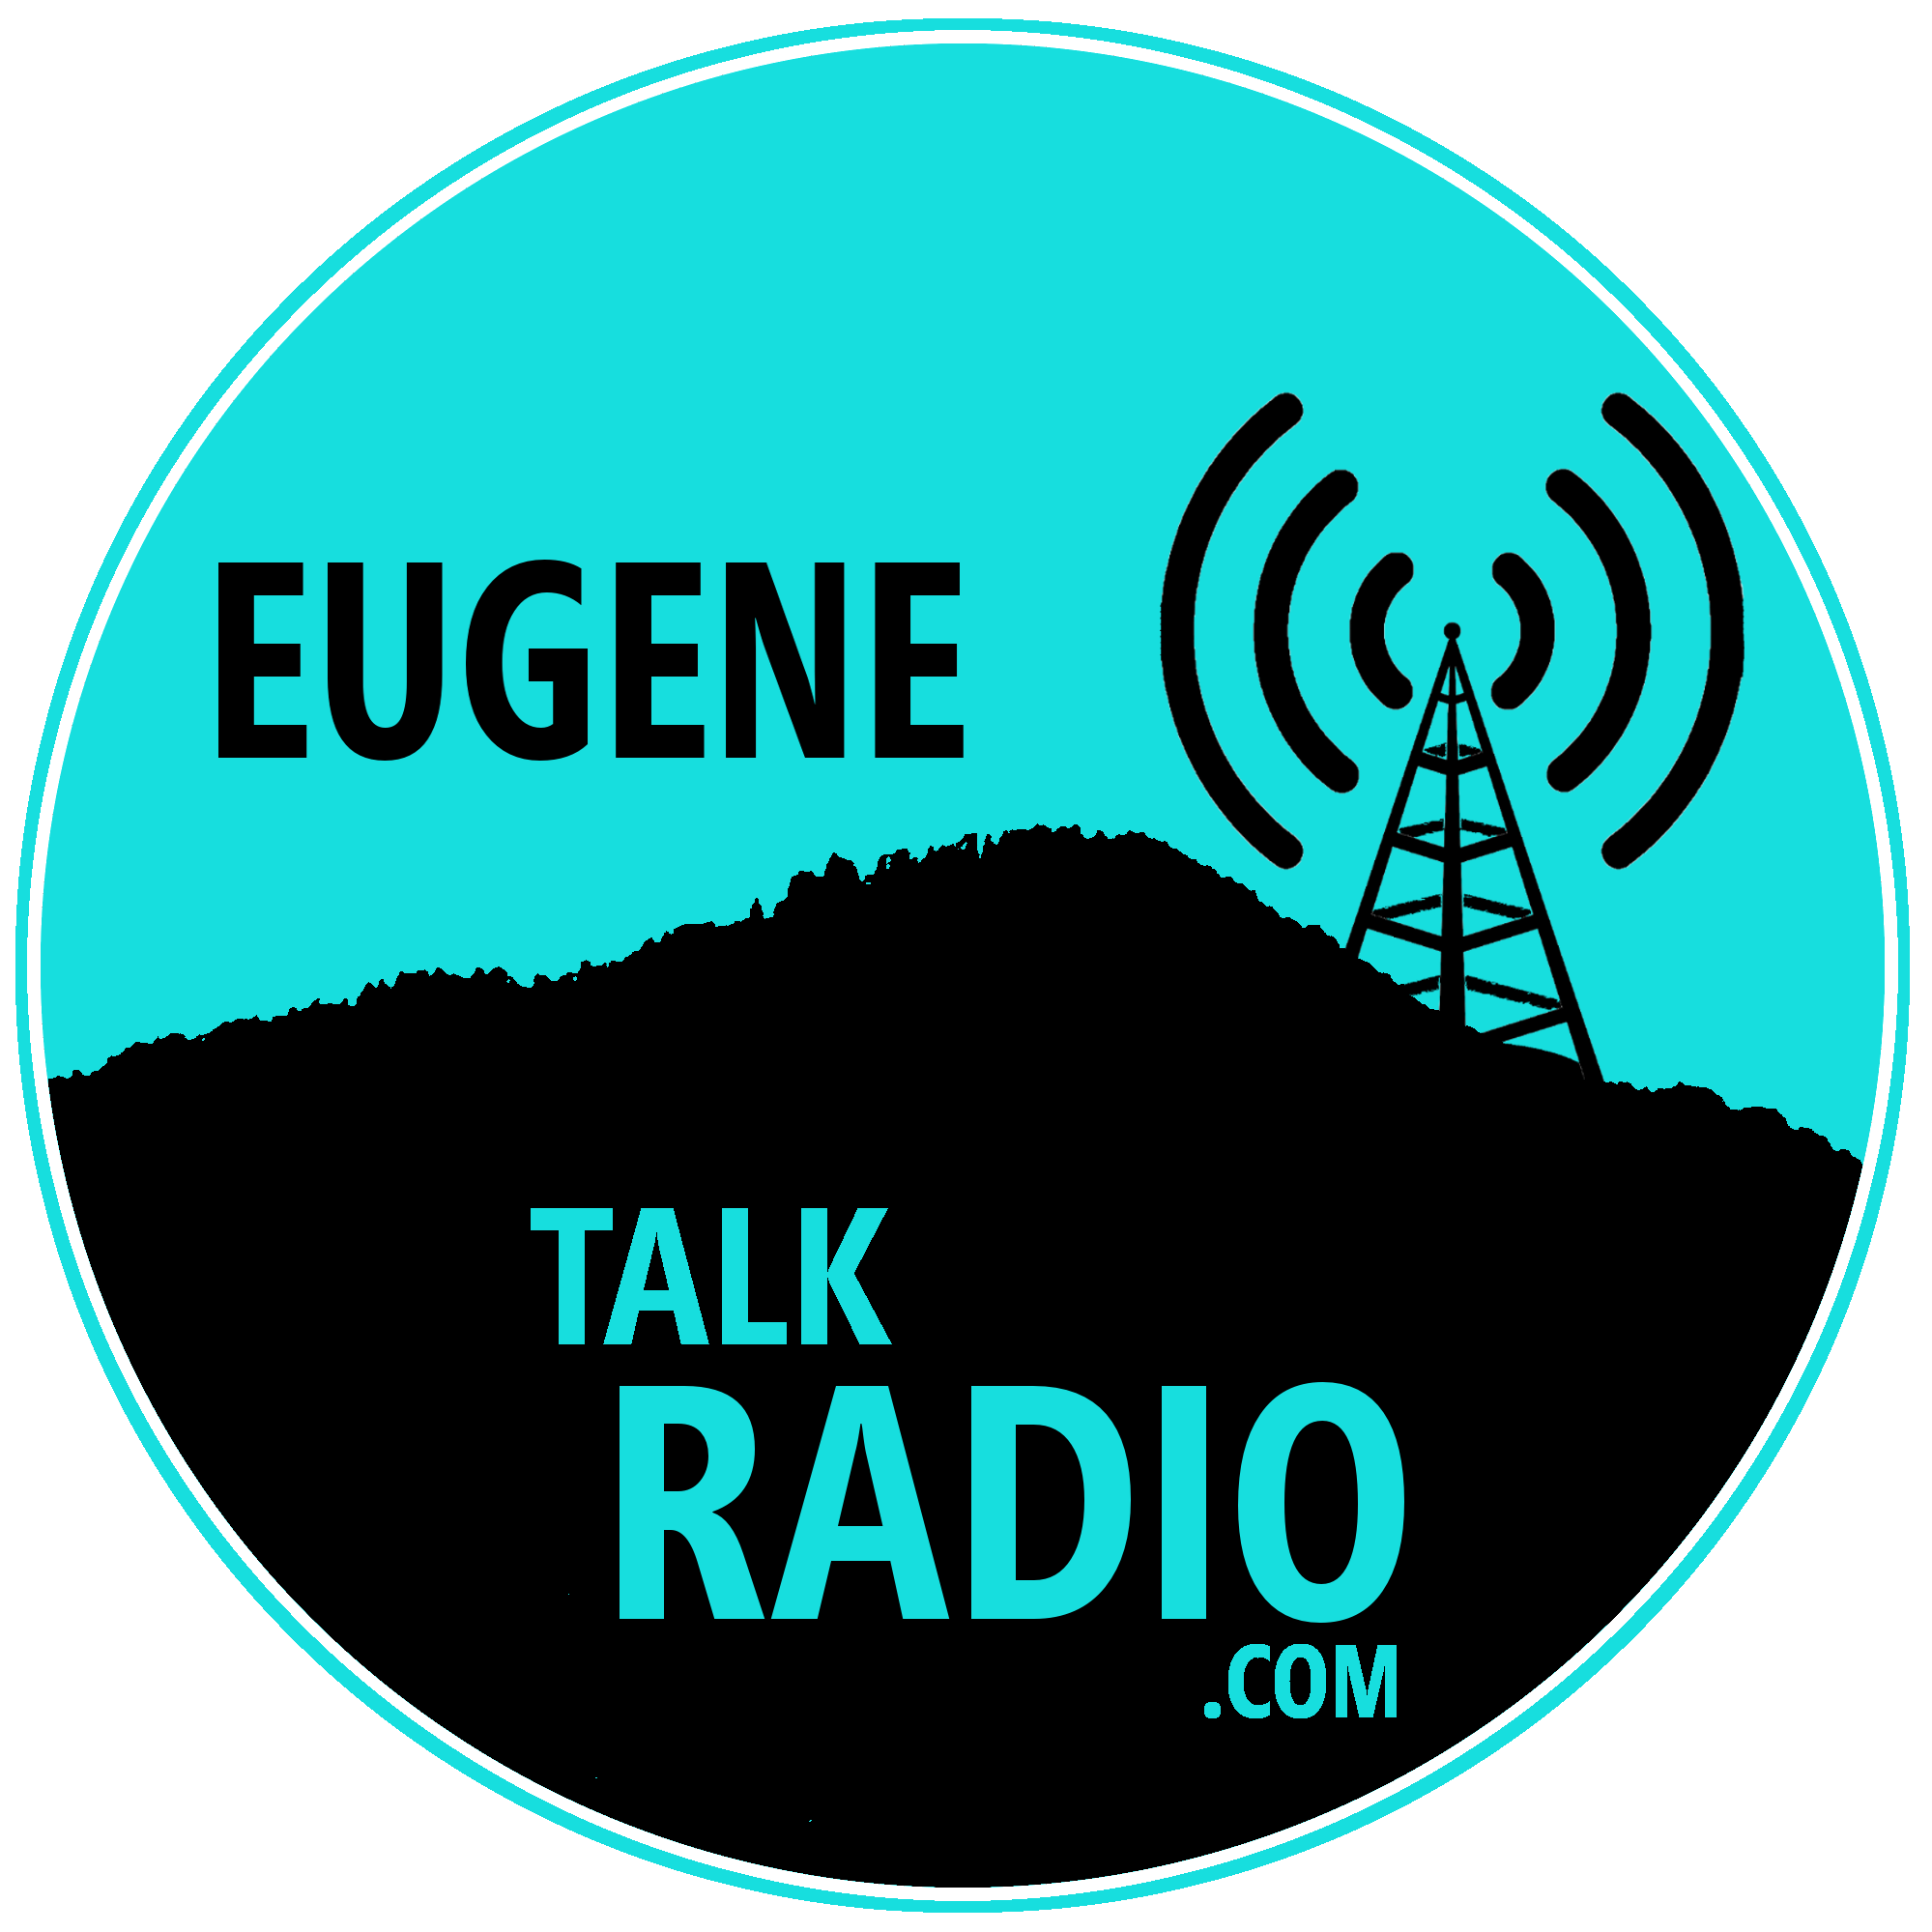 Eugene Talk Radio